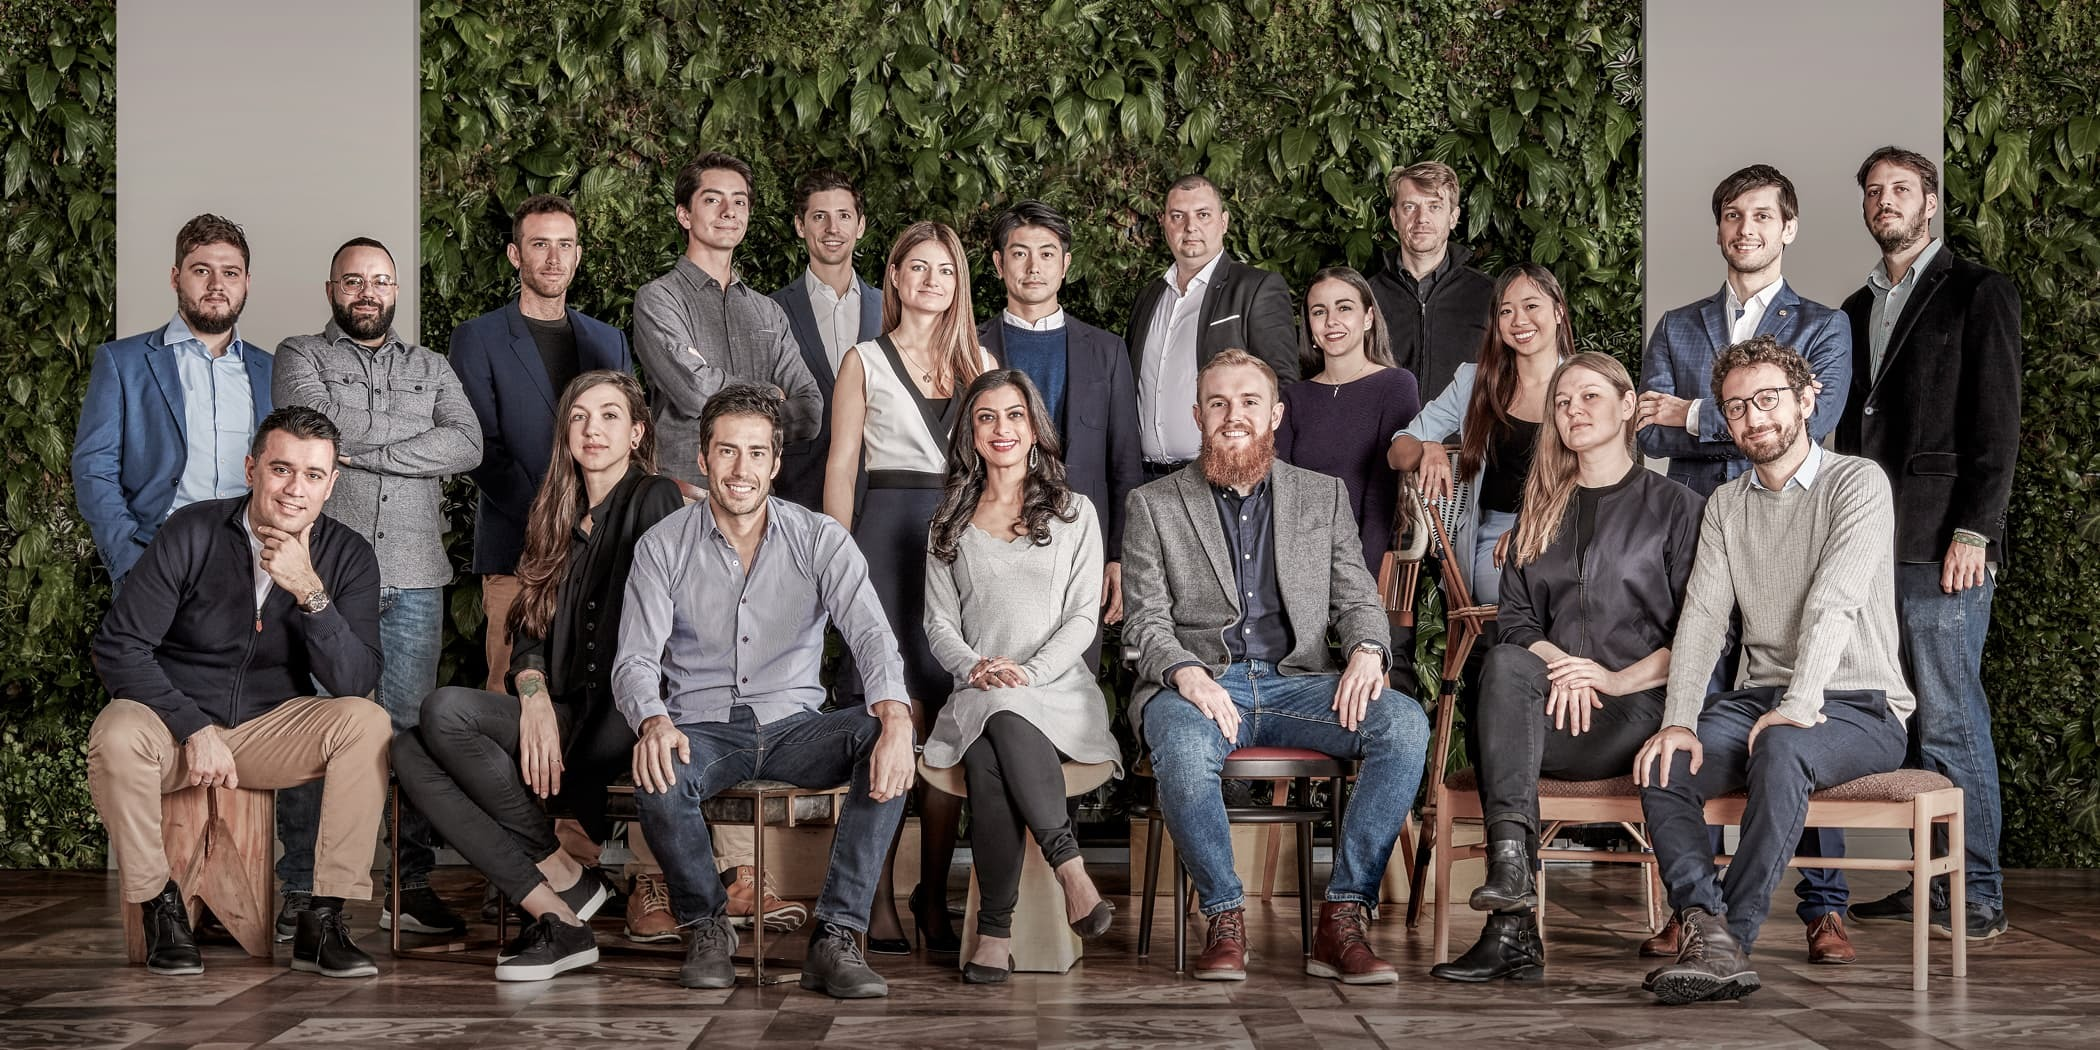 CHIVAS VENTURE IMPACT: OUR ALUMNI'S SUCCESS